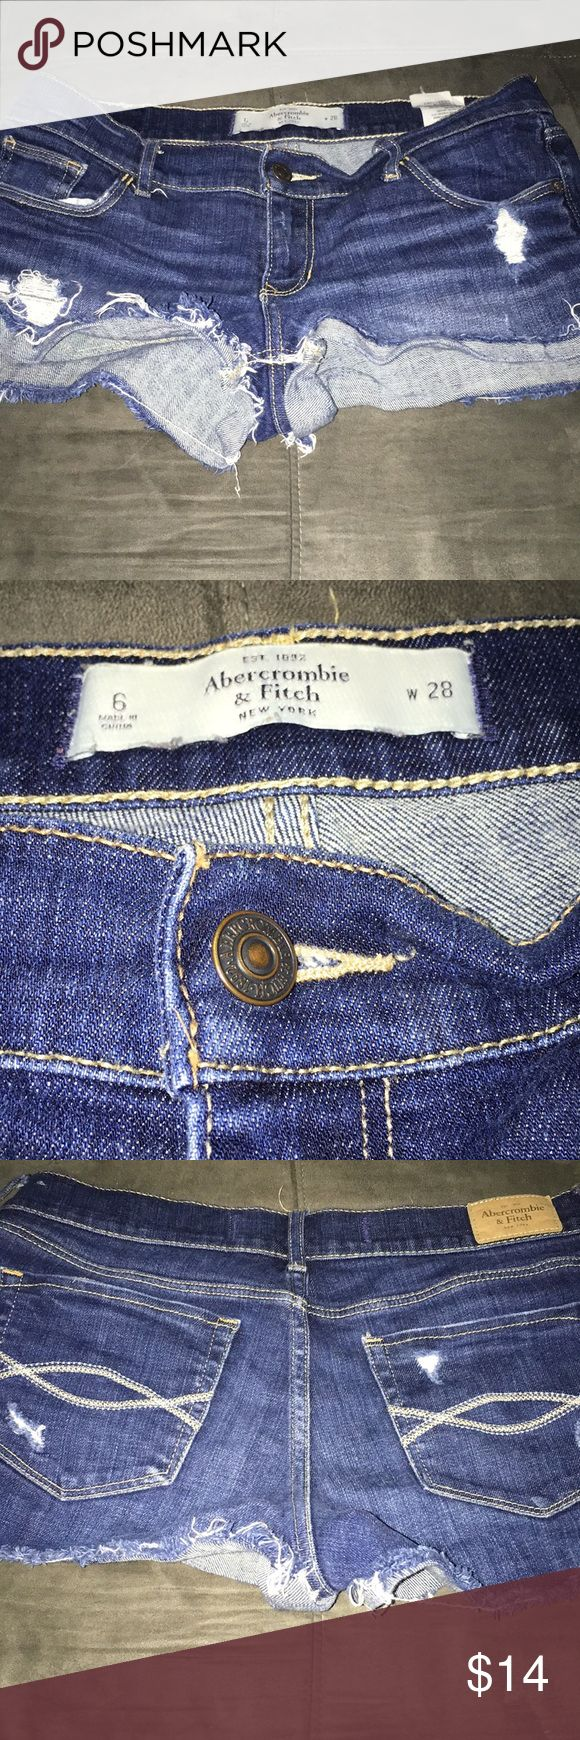 Abercrombie and Fitch Shorts Sz 6 Abercrombie and Fitch Shorts Sz 6 some wear Abercrombie & Fitch Shorts